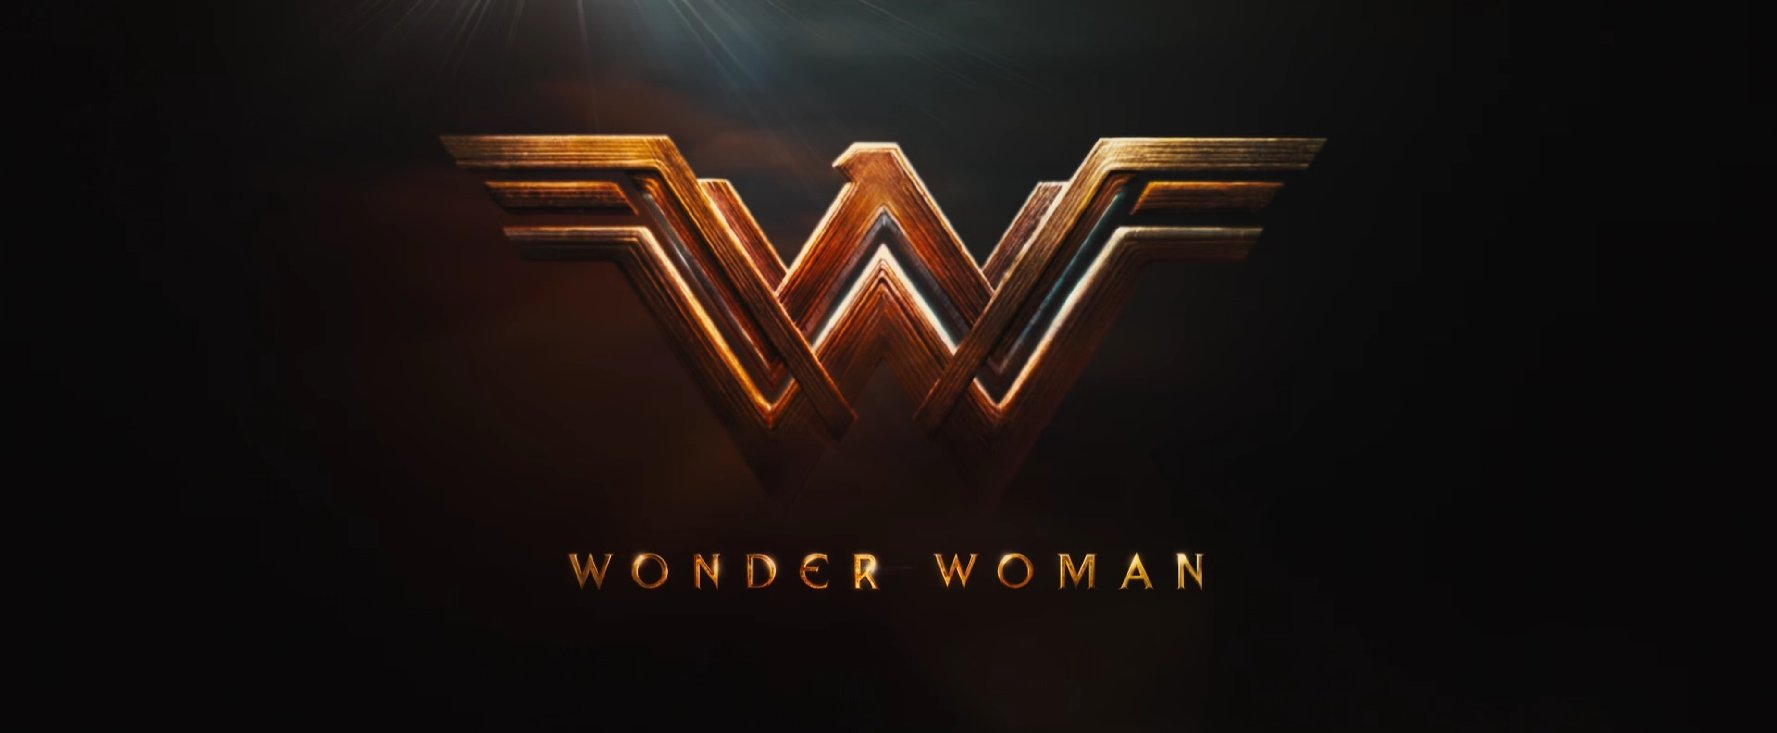 Wonder Woman is Not Just a Great DCEU Film, It's a Great Film